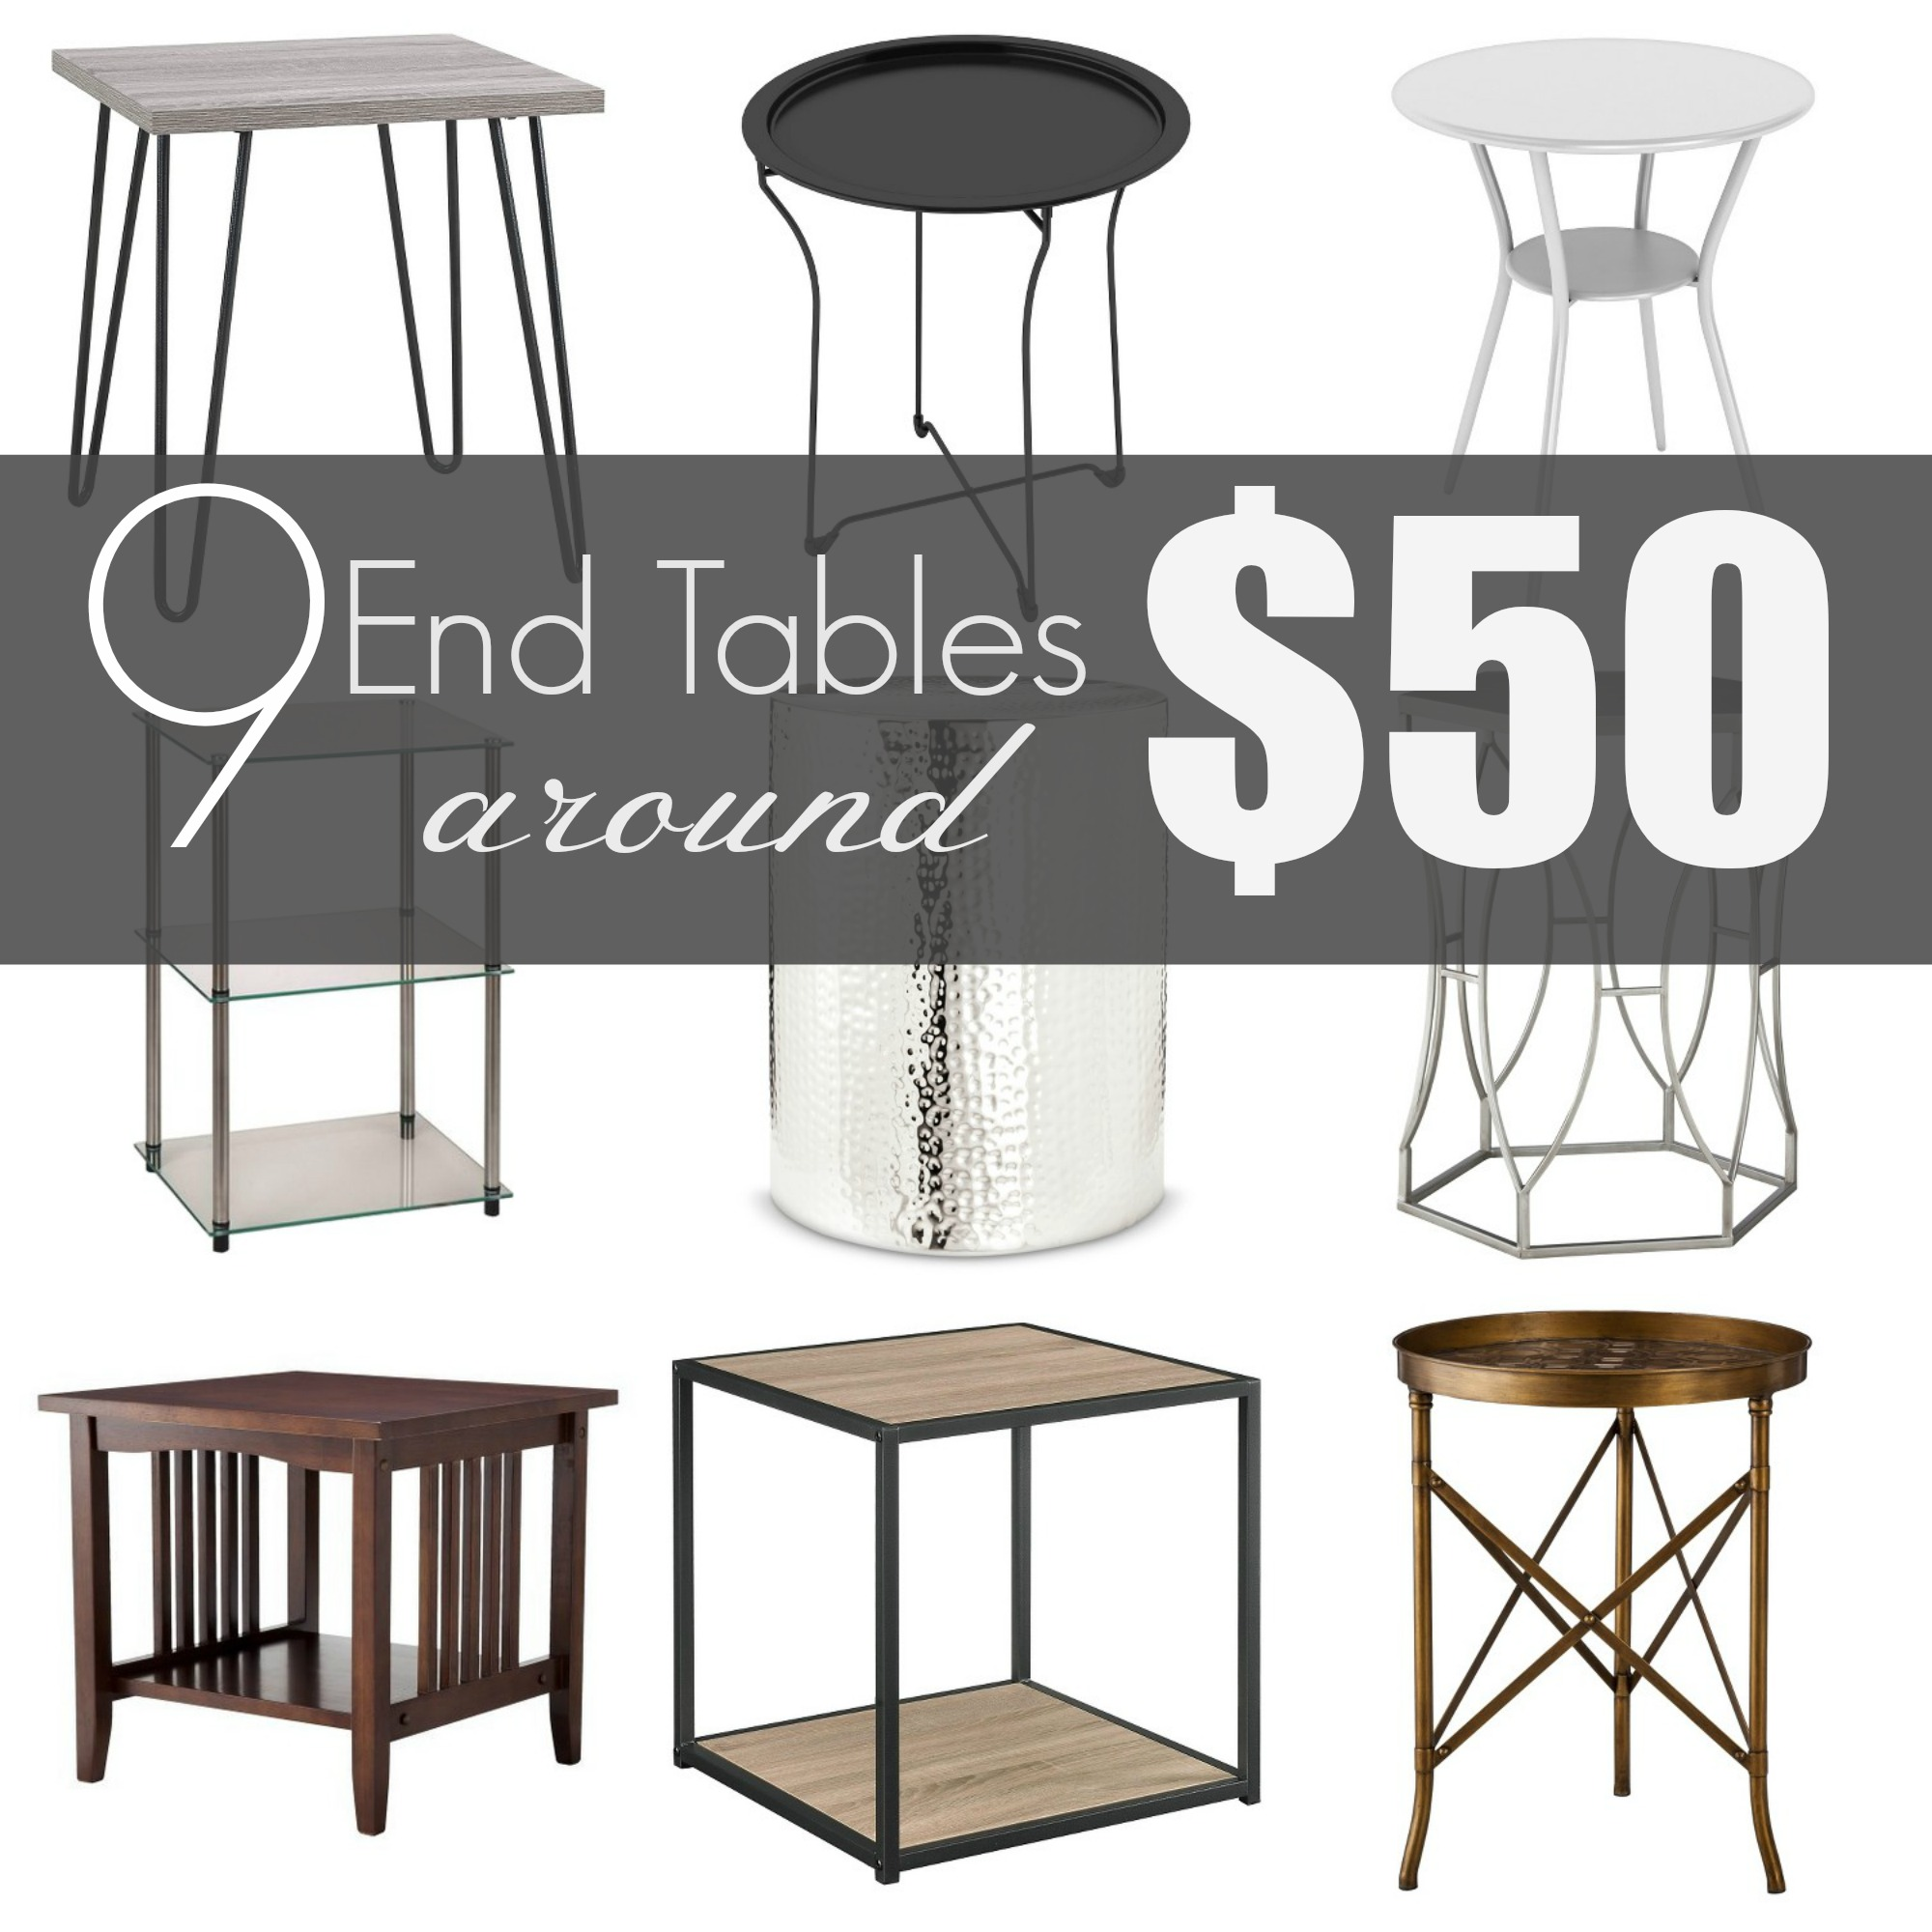 End table under 50